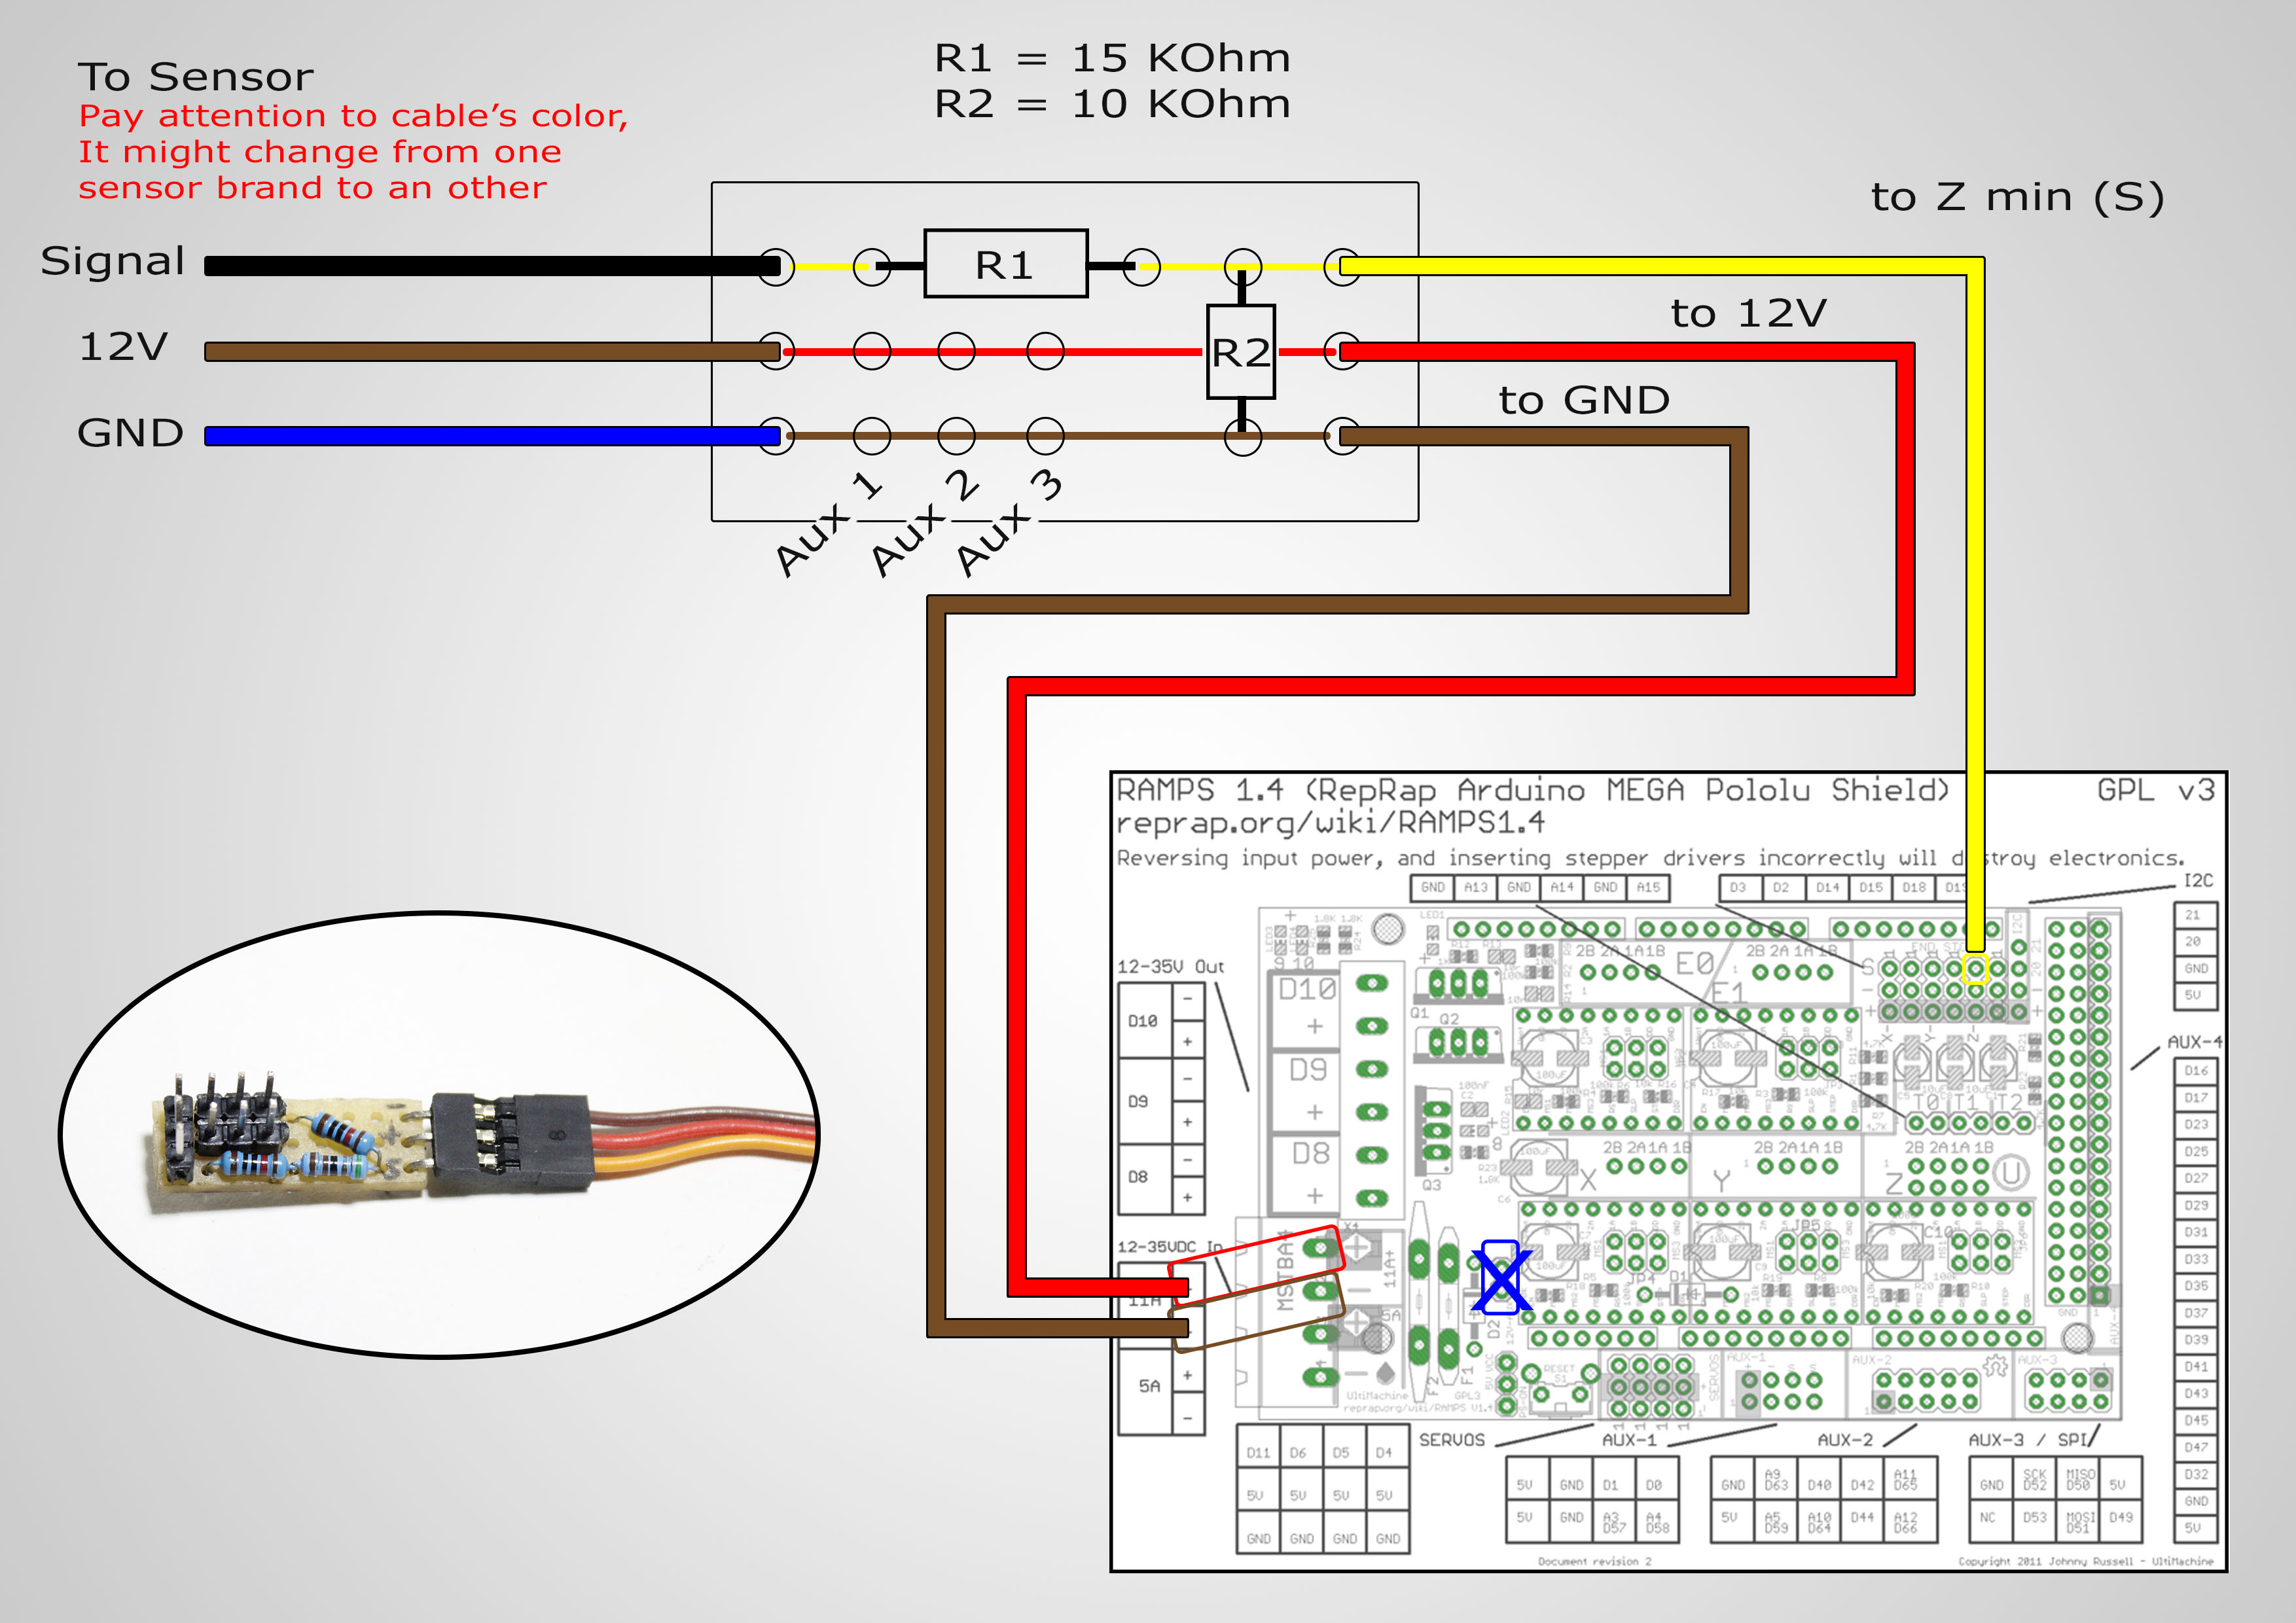 3d Proximity Sensor Wiring besides Bcdc1225 install furthermore From Kw To Mw System Design Considerations together with Chrysler Fuse Box furthermore Outback 3640W Off Grid Kit Fp2 Gvfx3524. on rv breaker box wiring diagram